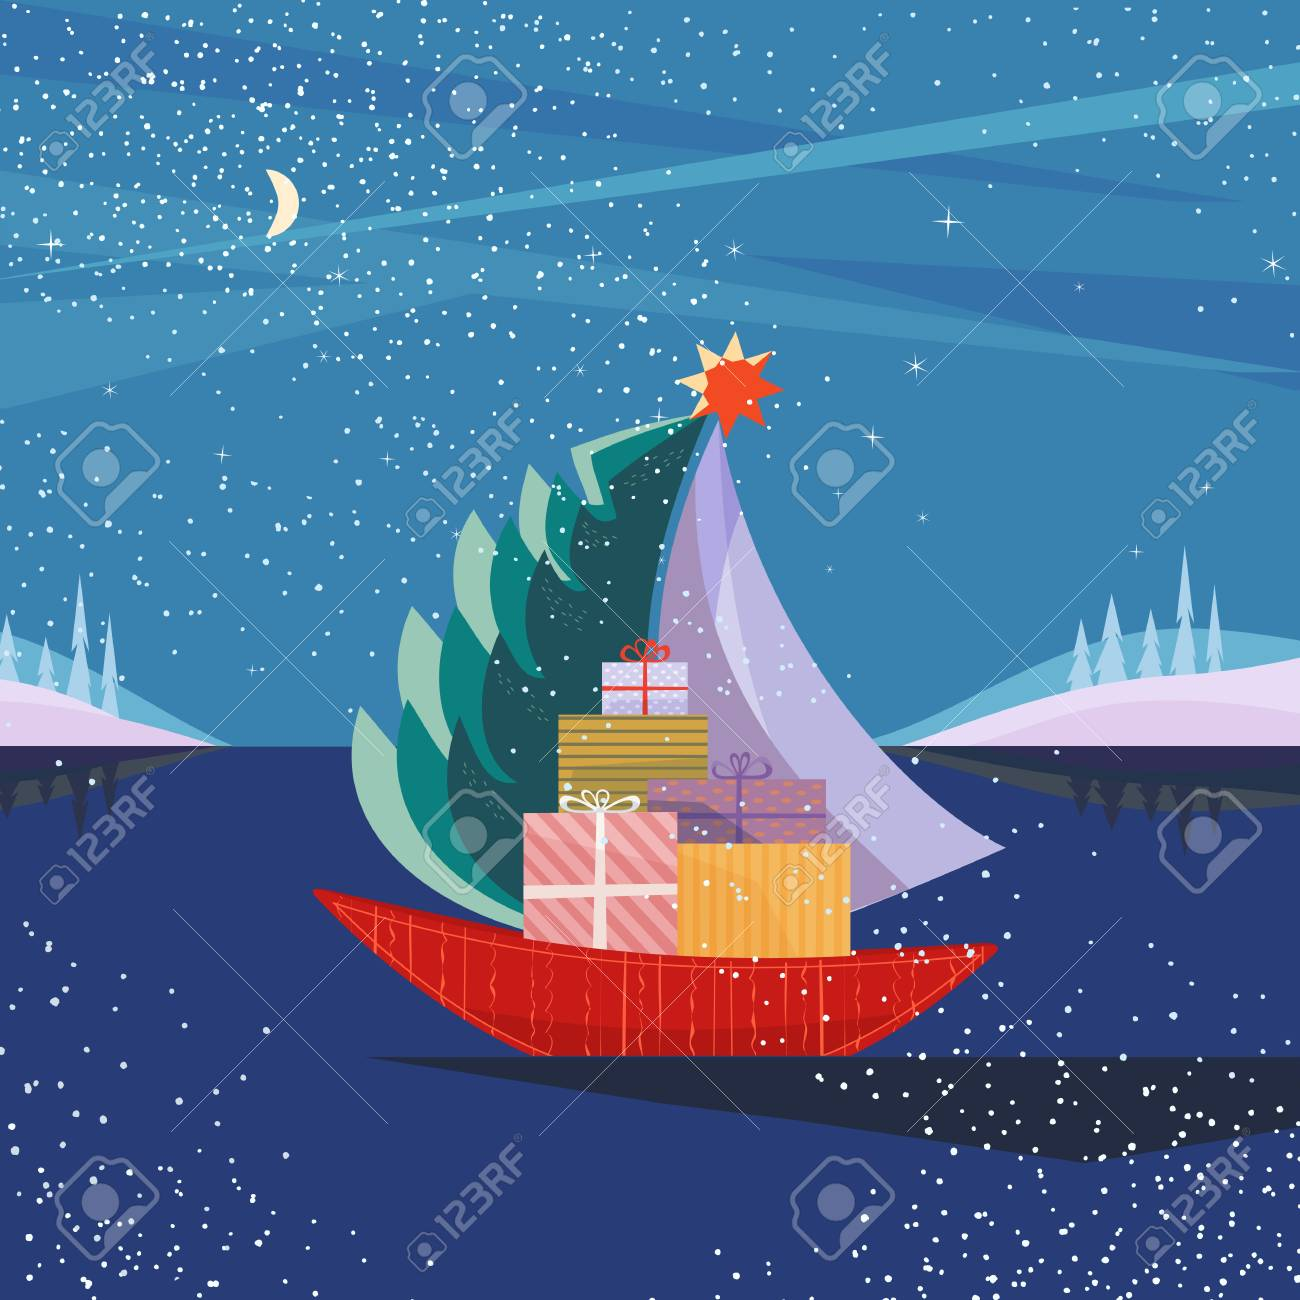 Christmas Boat.Christmas Sailboat Sailing By Sea With Fir Tree Gifts Present